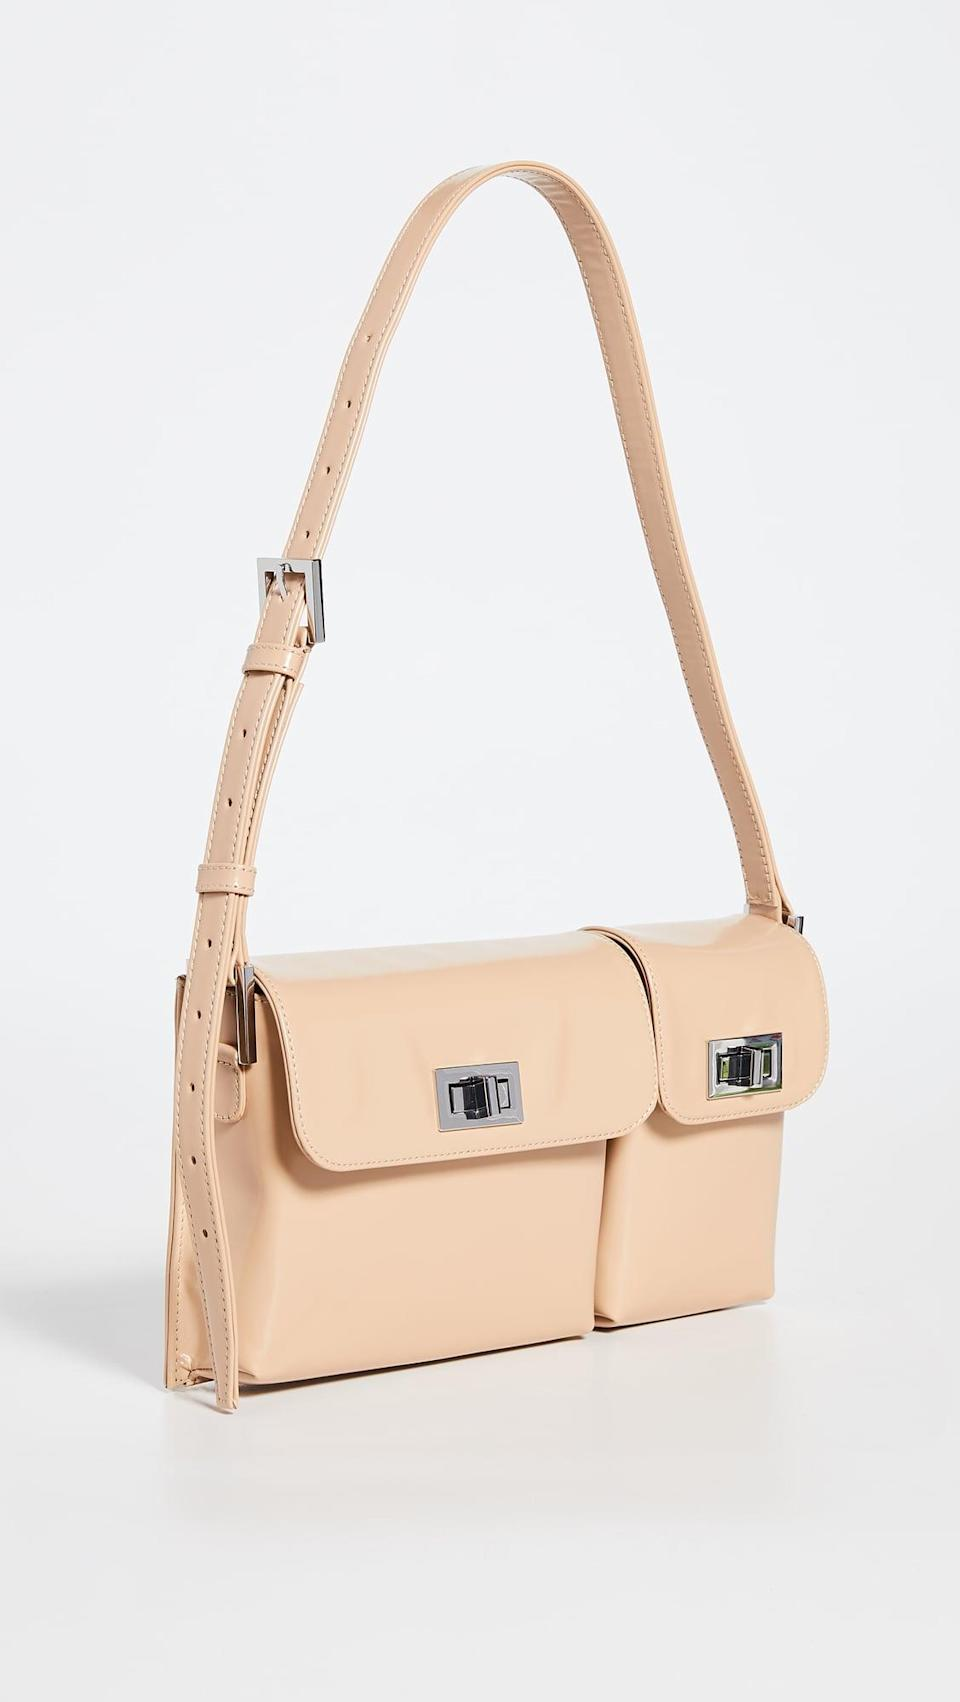 <p>This <span>By Far Billy Cream Semi Patent Leather Bag</span> ($538) features a cool design and separate pockets that are perfect for holding the necessities when running errands and beyond.</p>